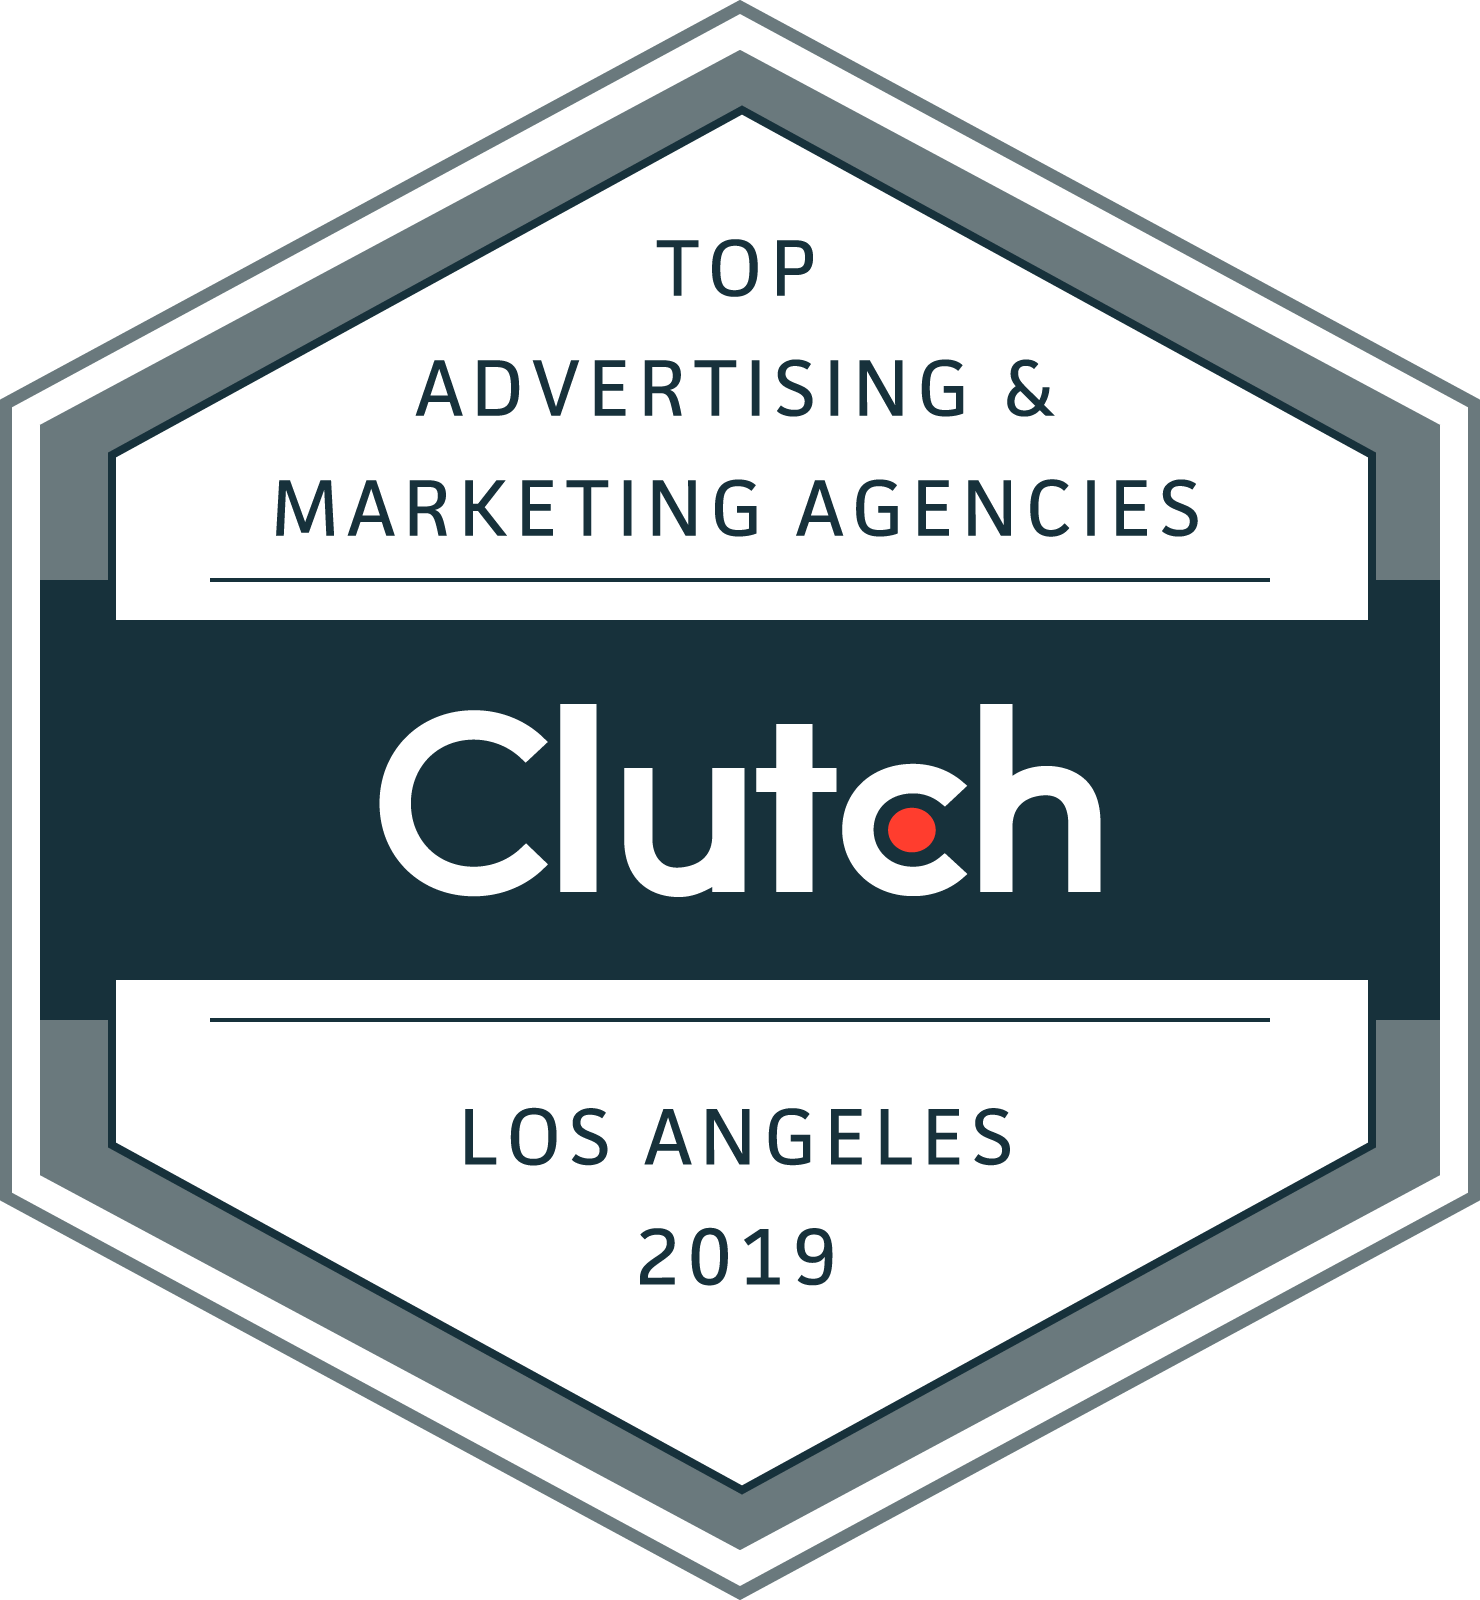 LAD Solutions Named a Top Marketing Agency by Clutch!